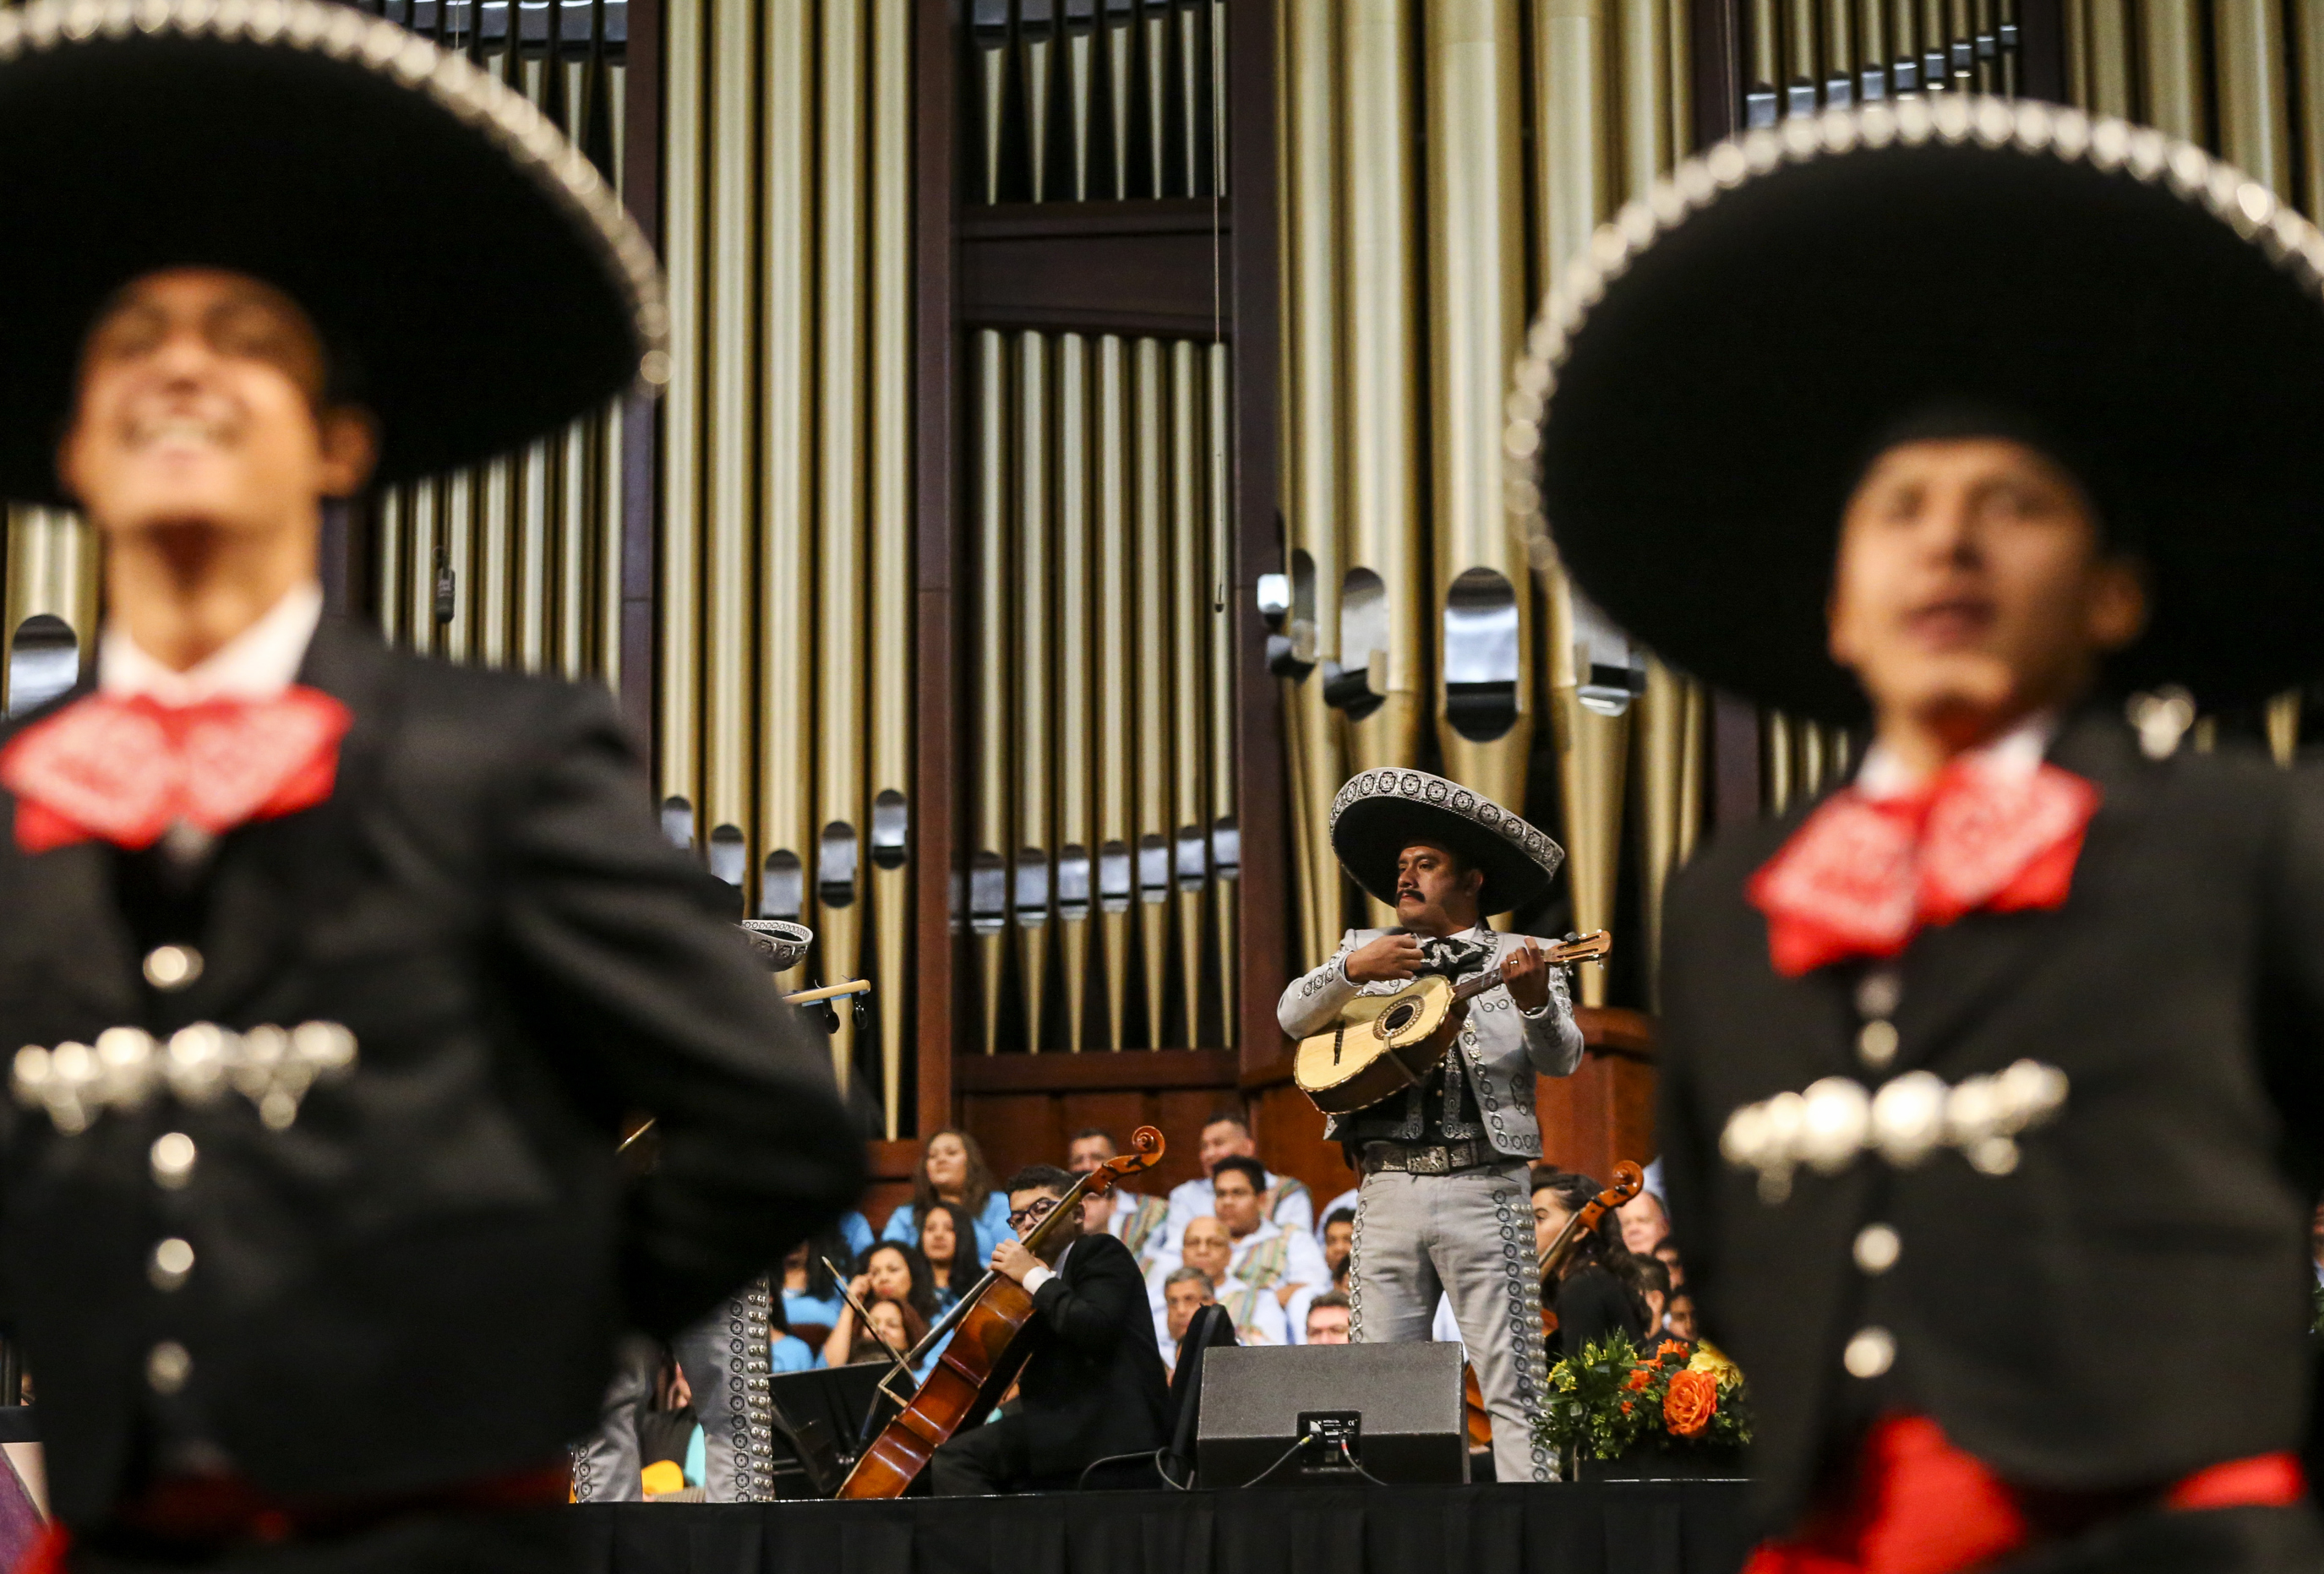 A member of the mariachi band performs with the dancers during the dress rehearsal of the Mexican dance Guadalajara LaNegra for the Luz de las Naciones performance at the Conference Center in Salt Lake City on Saturday, Oct. 26, 2019.